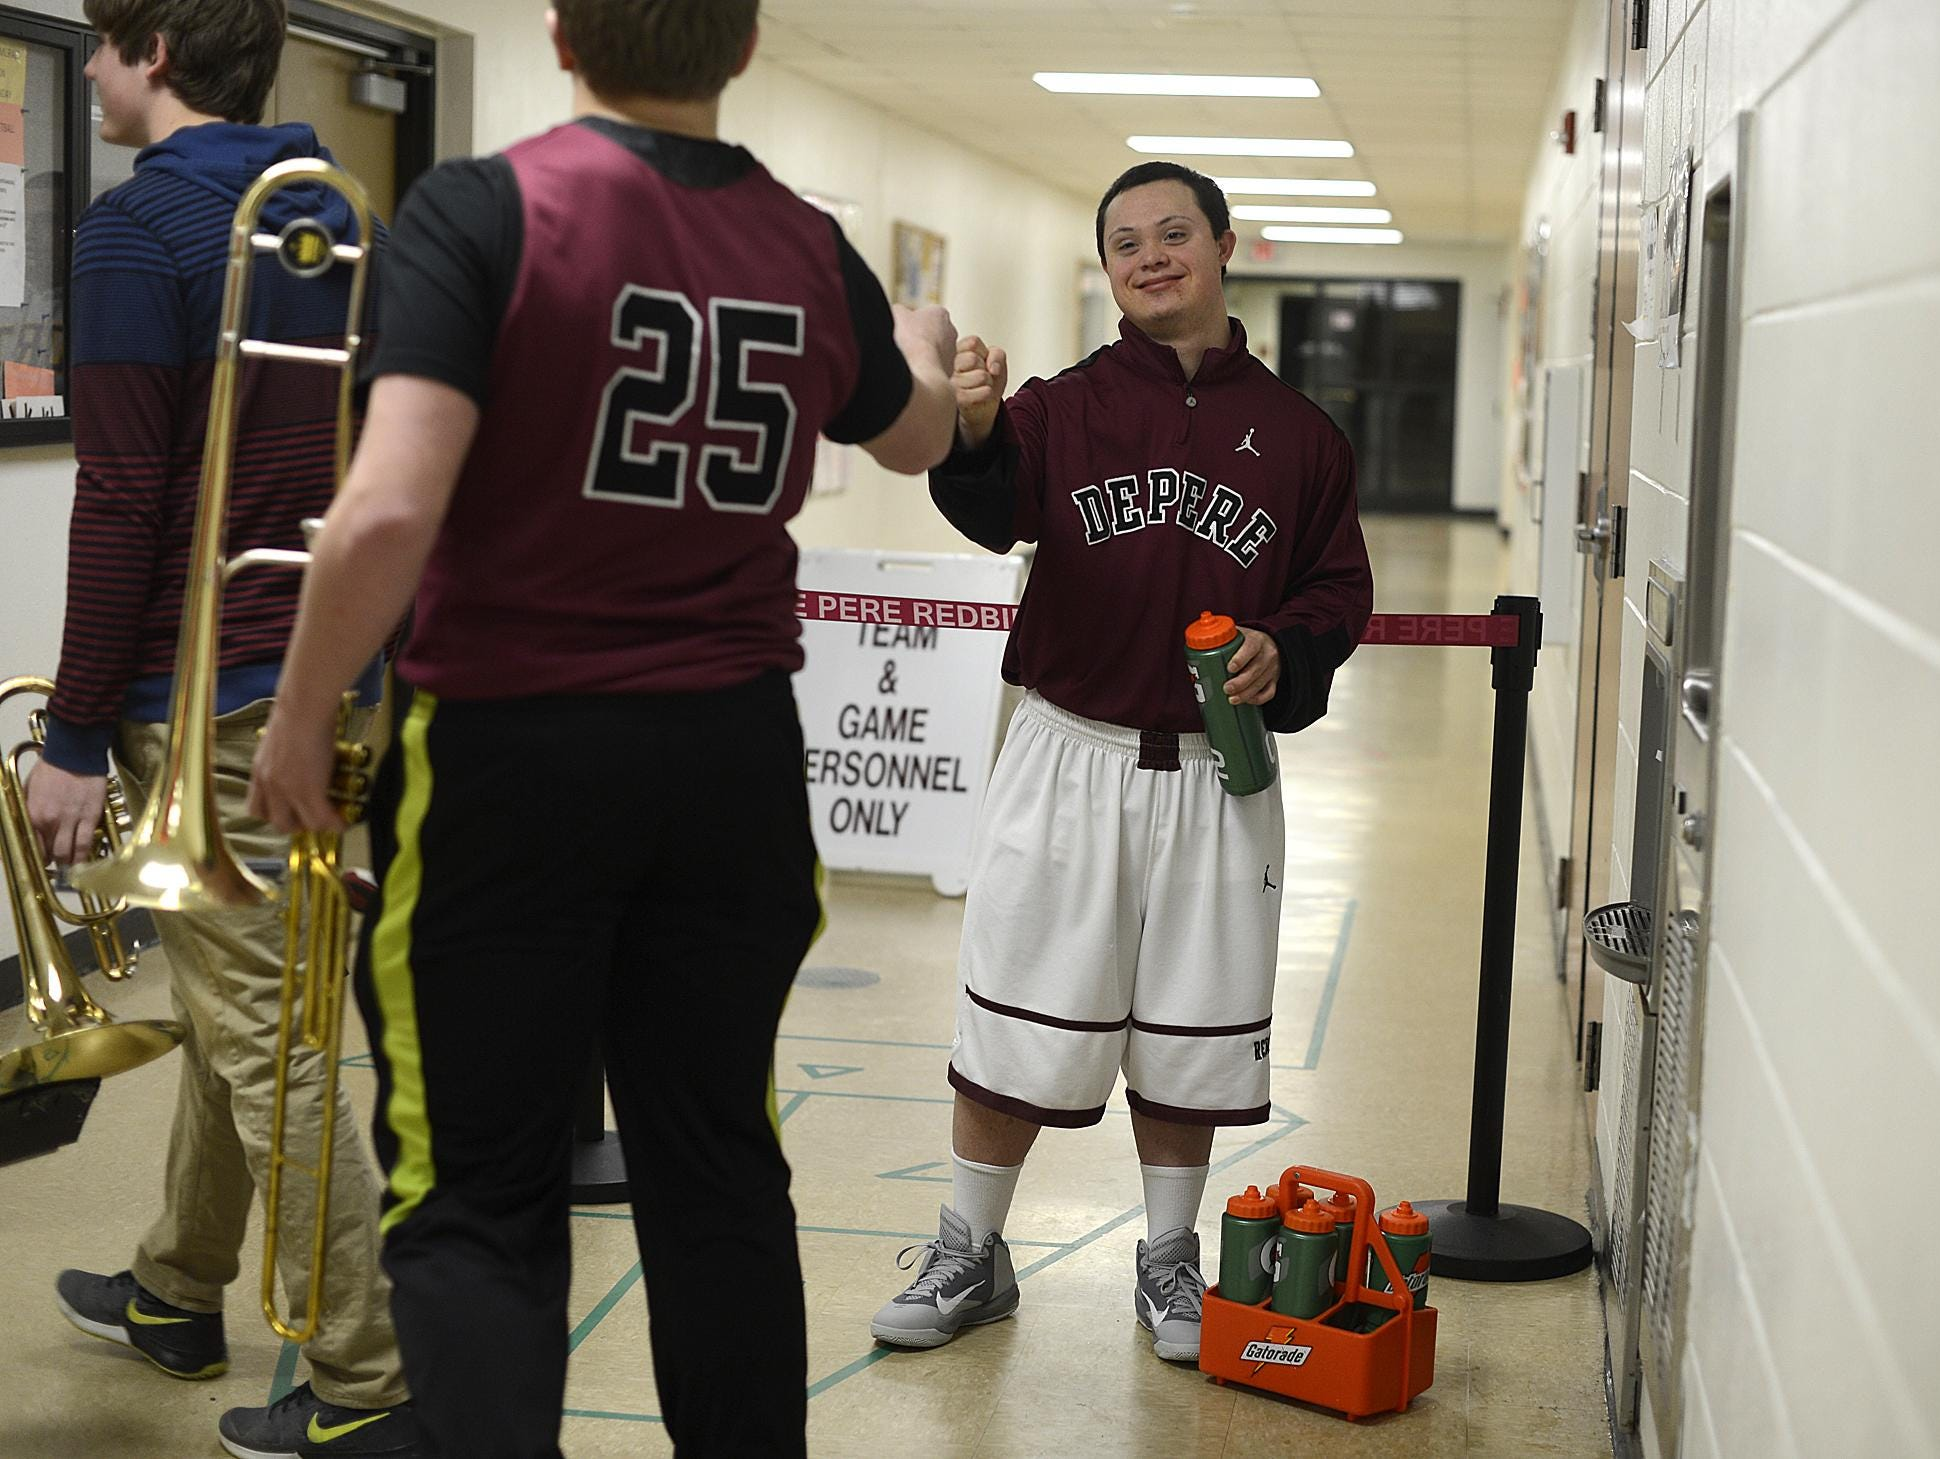 At right, Nate Wagner gets ready for his first game as a player against Sheboygan North.